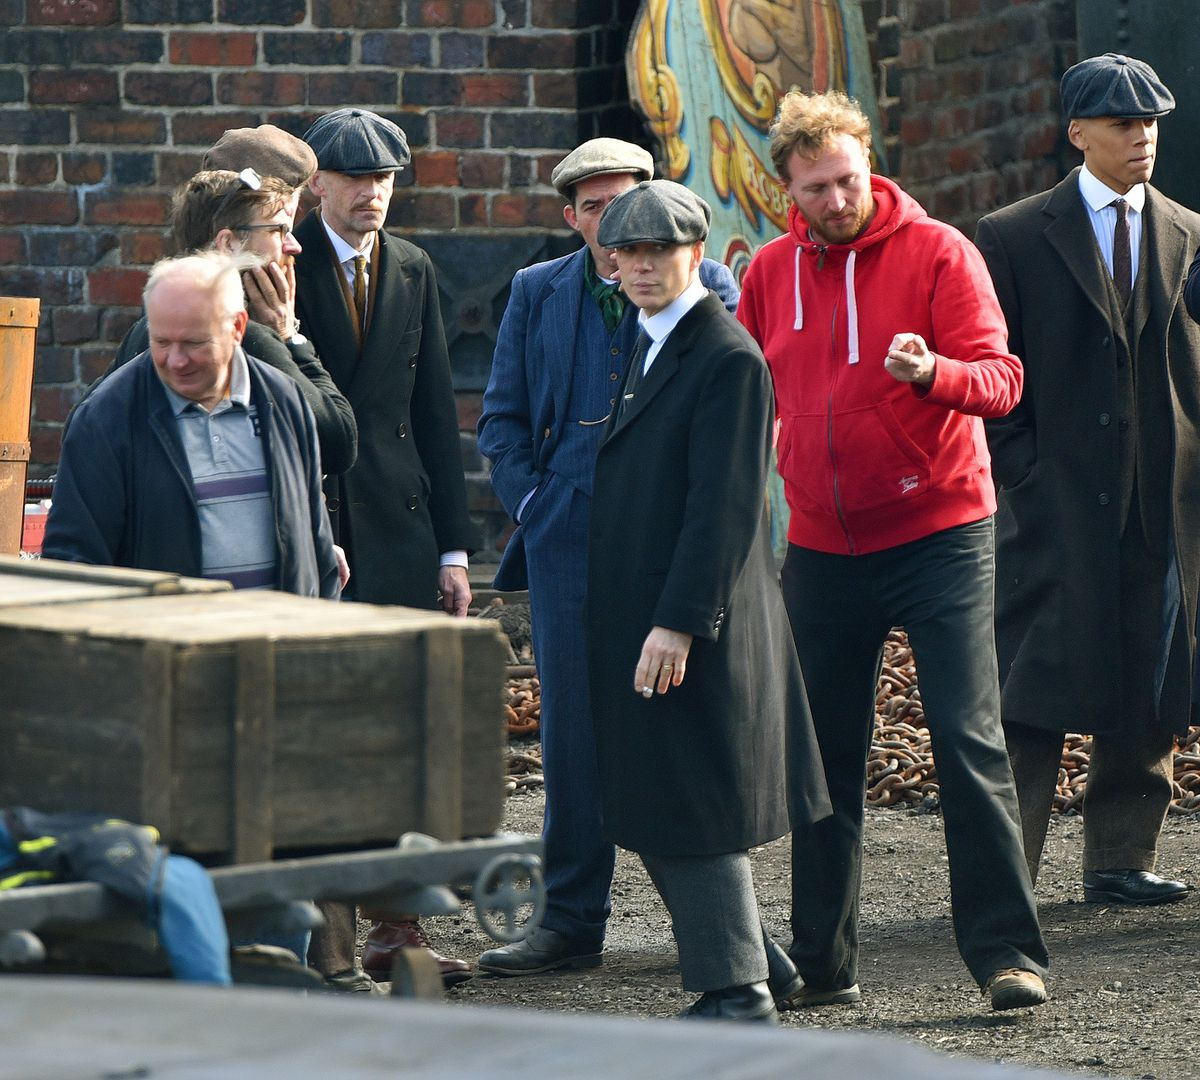 Cillian Murphy and co-stars during filming for Peaky Blinders at the museum